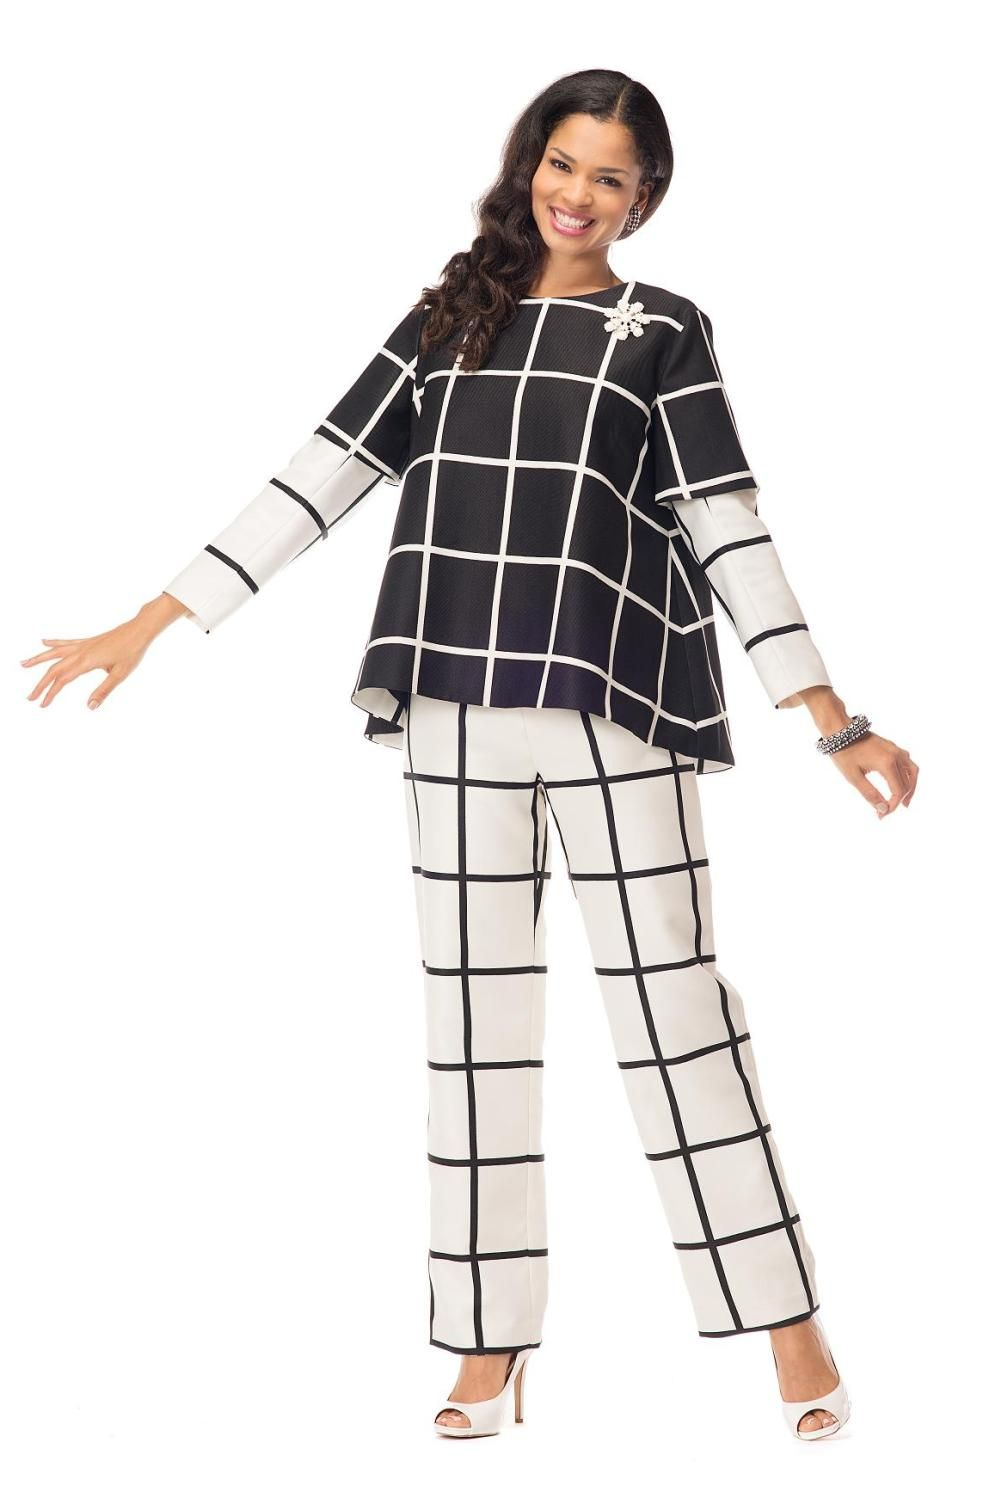 stunning 2 piece pant suit by in novelty fabric great church suit stunning 2 piece pant suit by in novelty fabric great church suit work suit day into evening suit or special occasion suit top is 24 inches